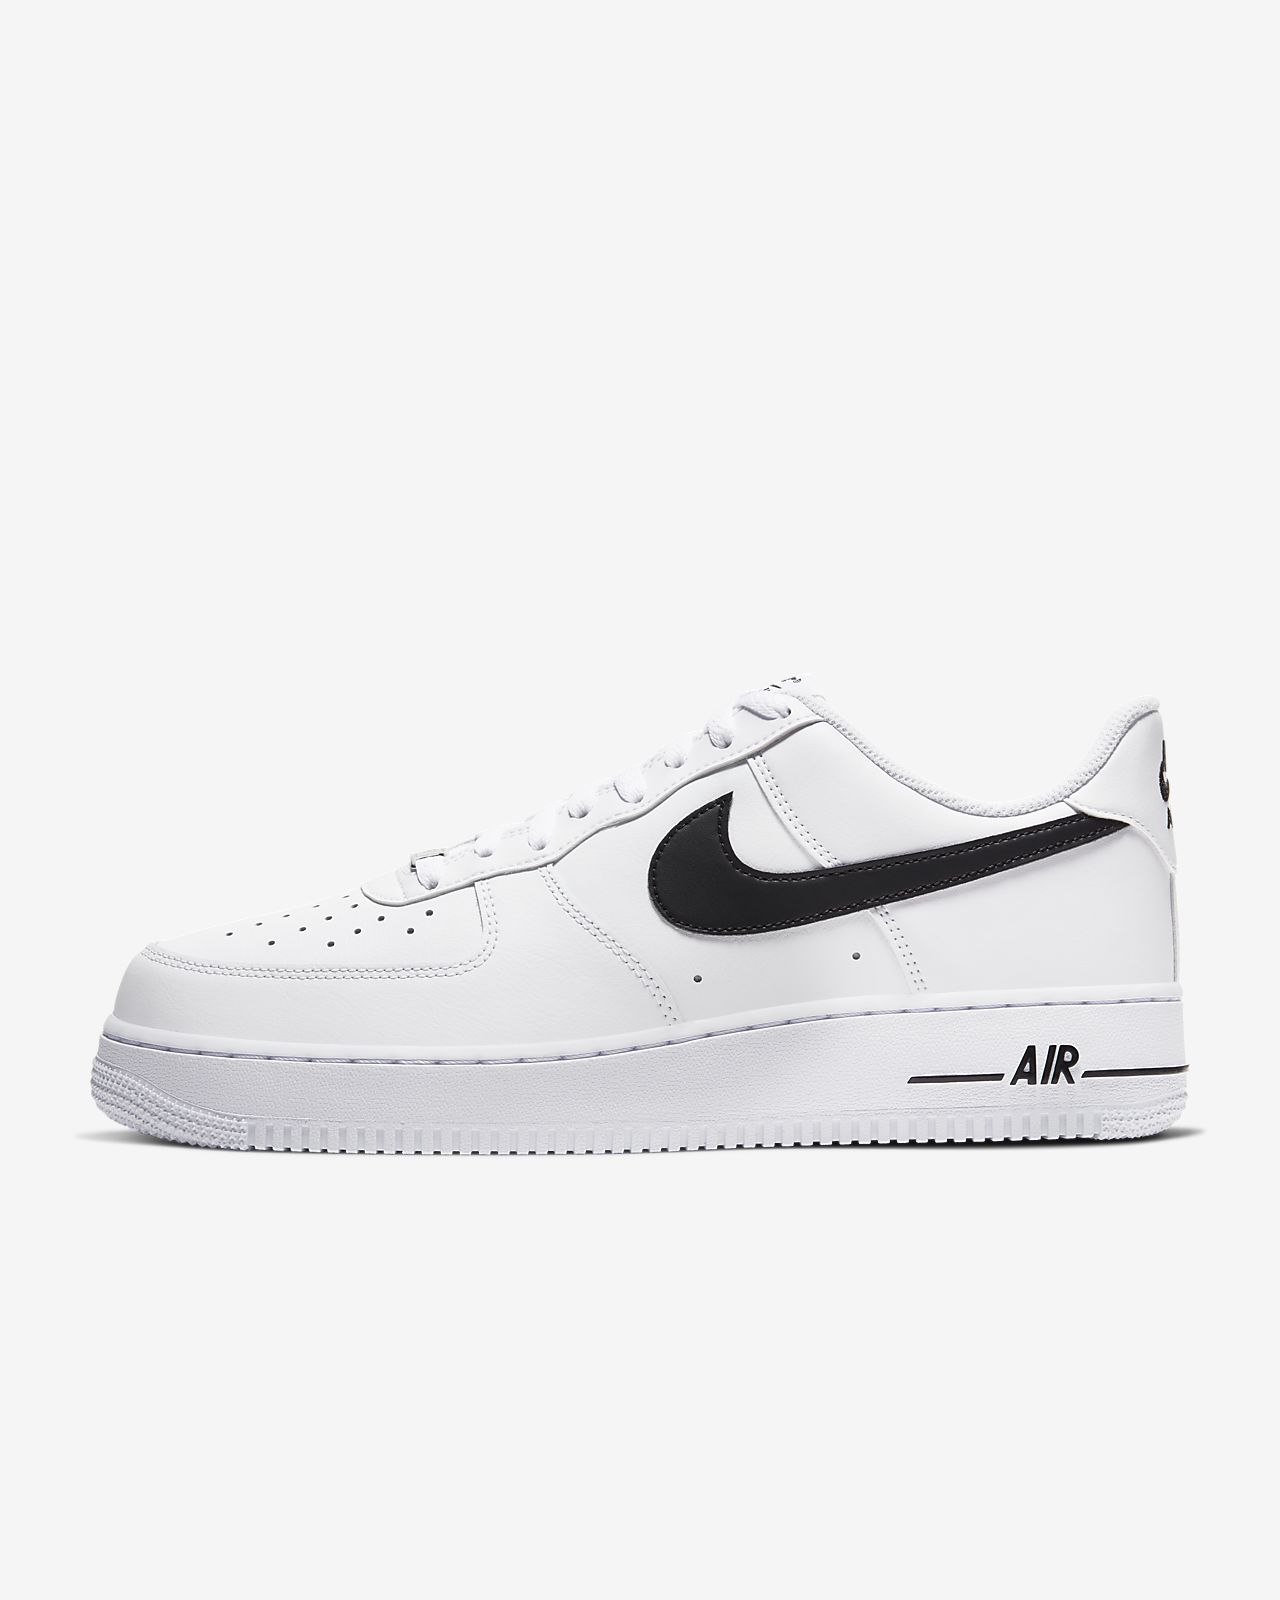 Air Force 1 Nike Free Nike Air Max Sneakers, air force one